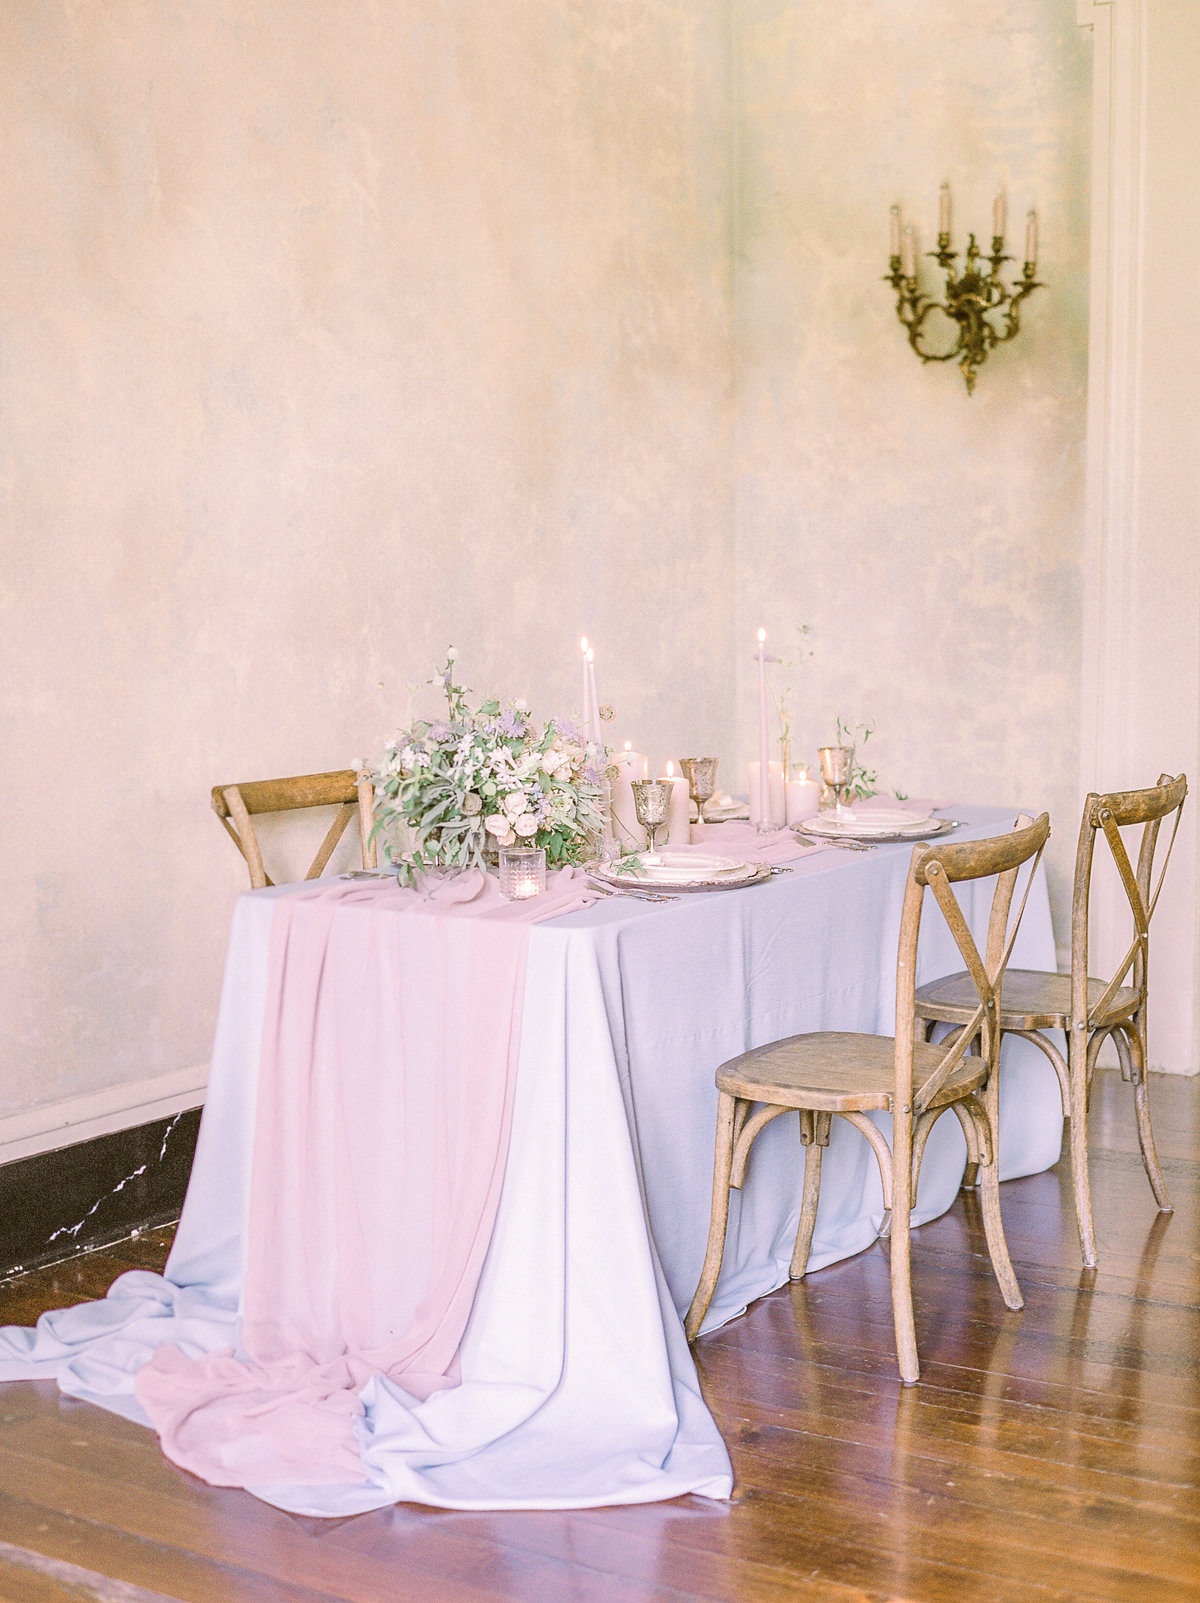 Raela is a fine art destination wedding planner telling love stories through intentional design.